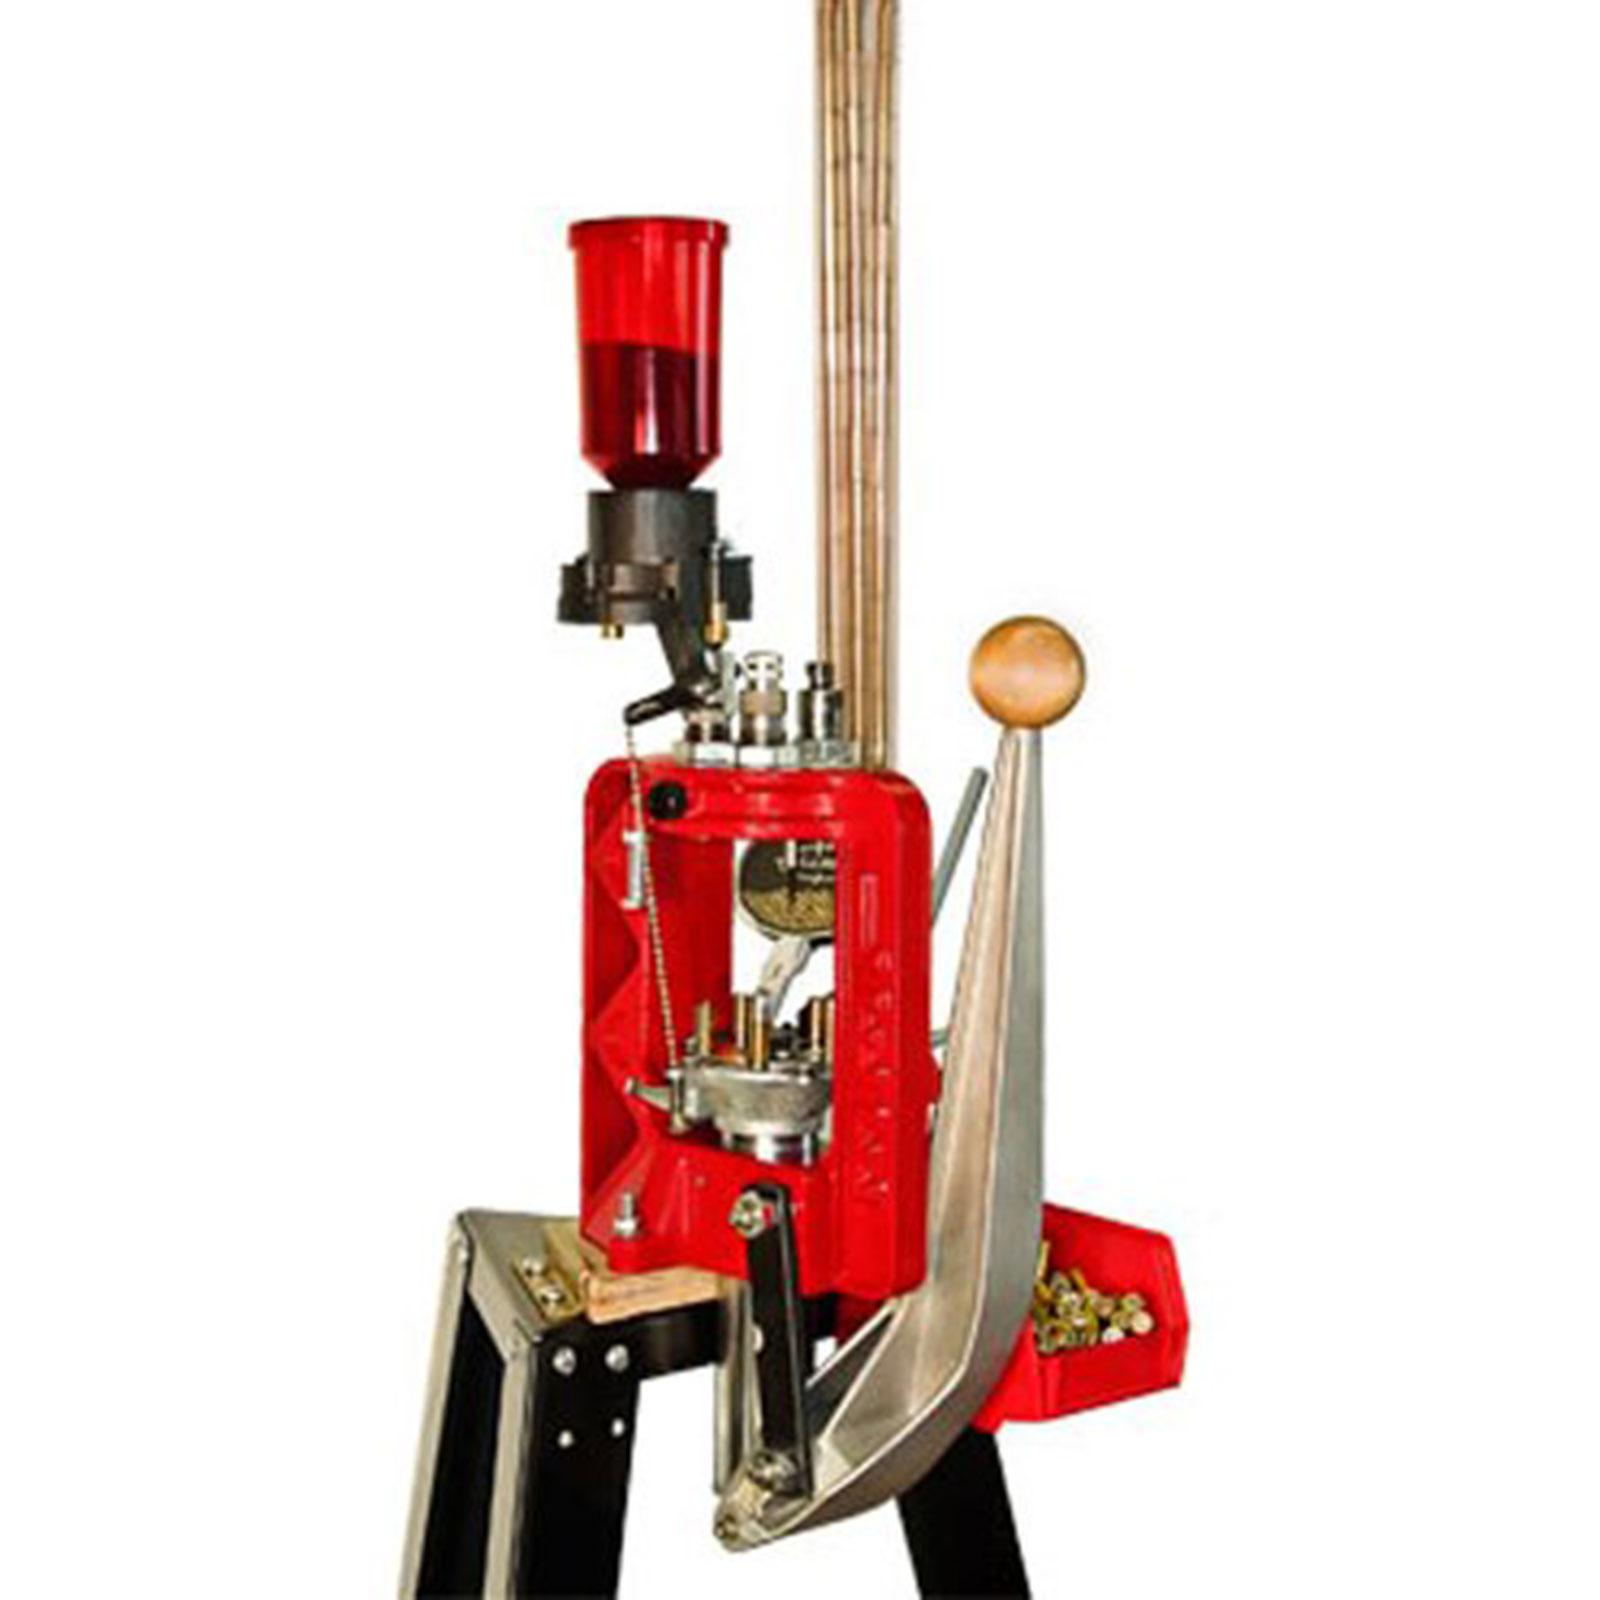 Lee Precision Load-Master Progressive 5-Hole Reloading Kit by Lee Precision